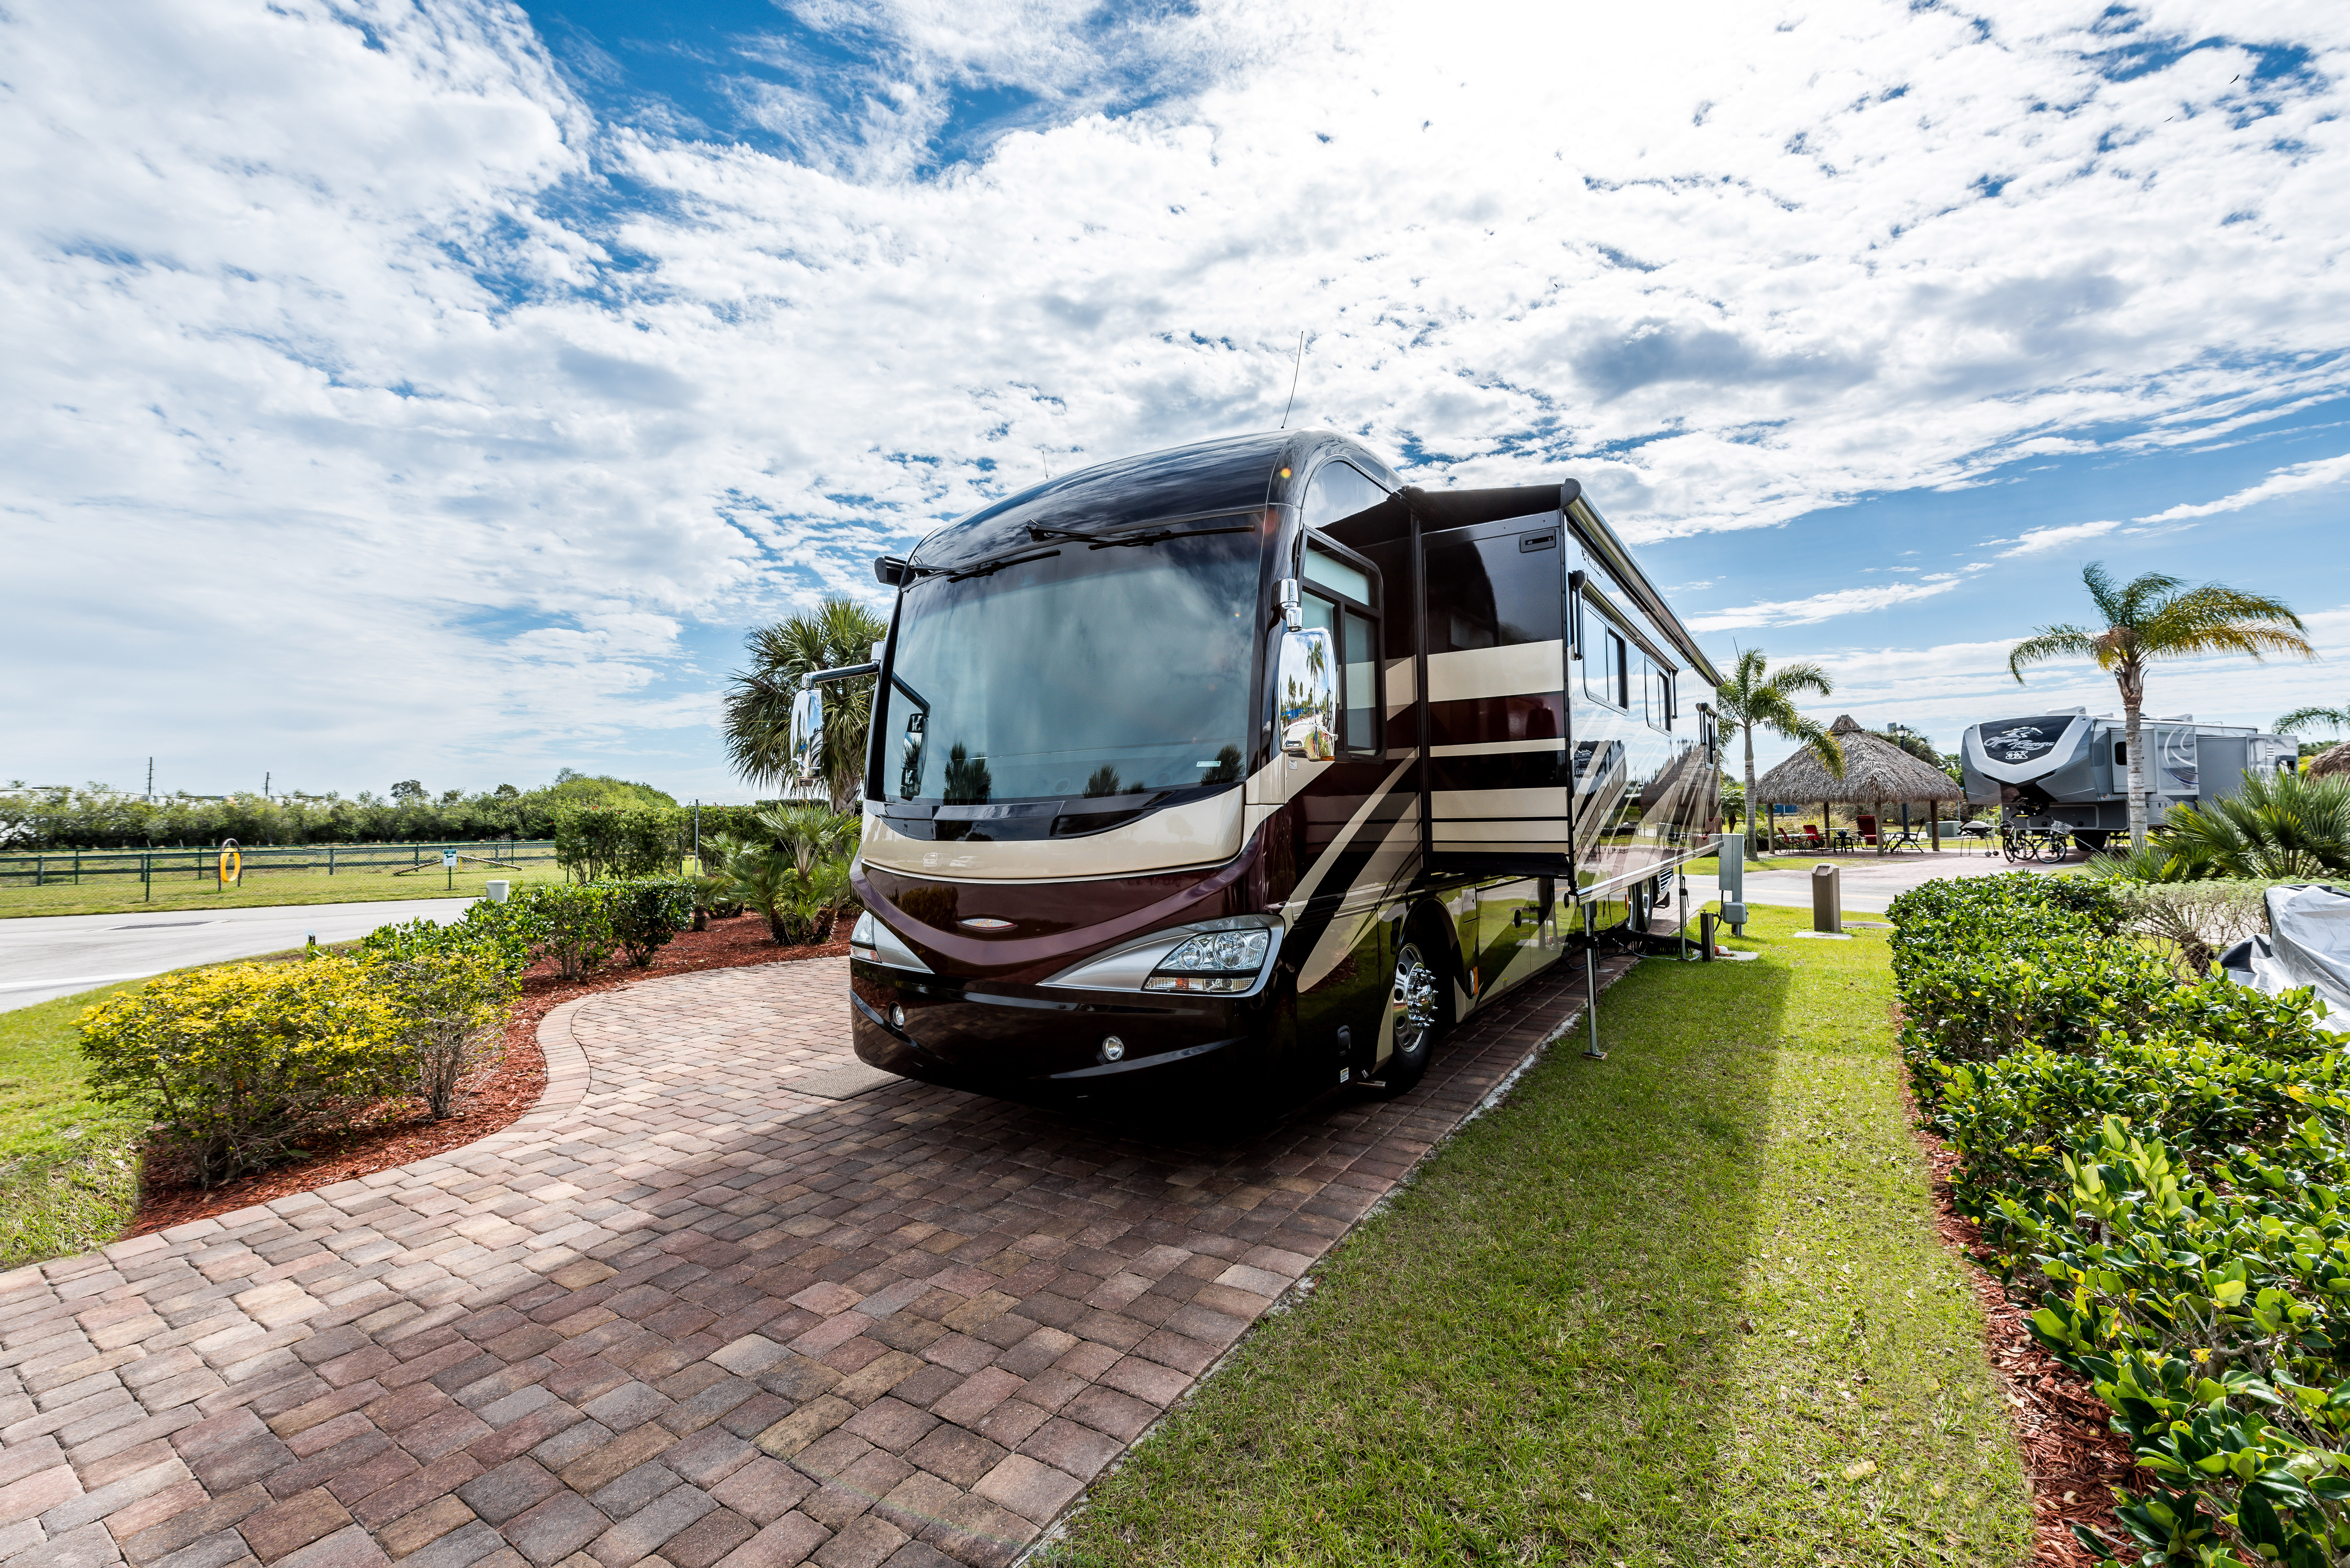 Florida fun to your weekends —Motorhome parked on a brick pad flanked by lush grass.